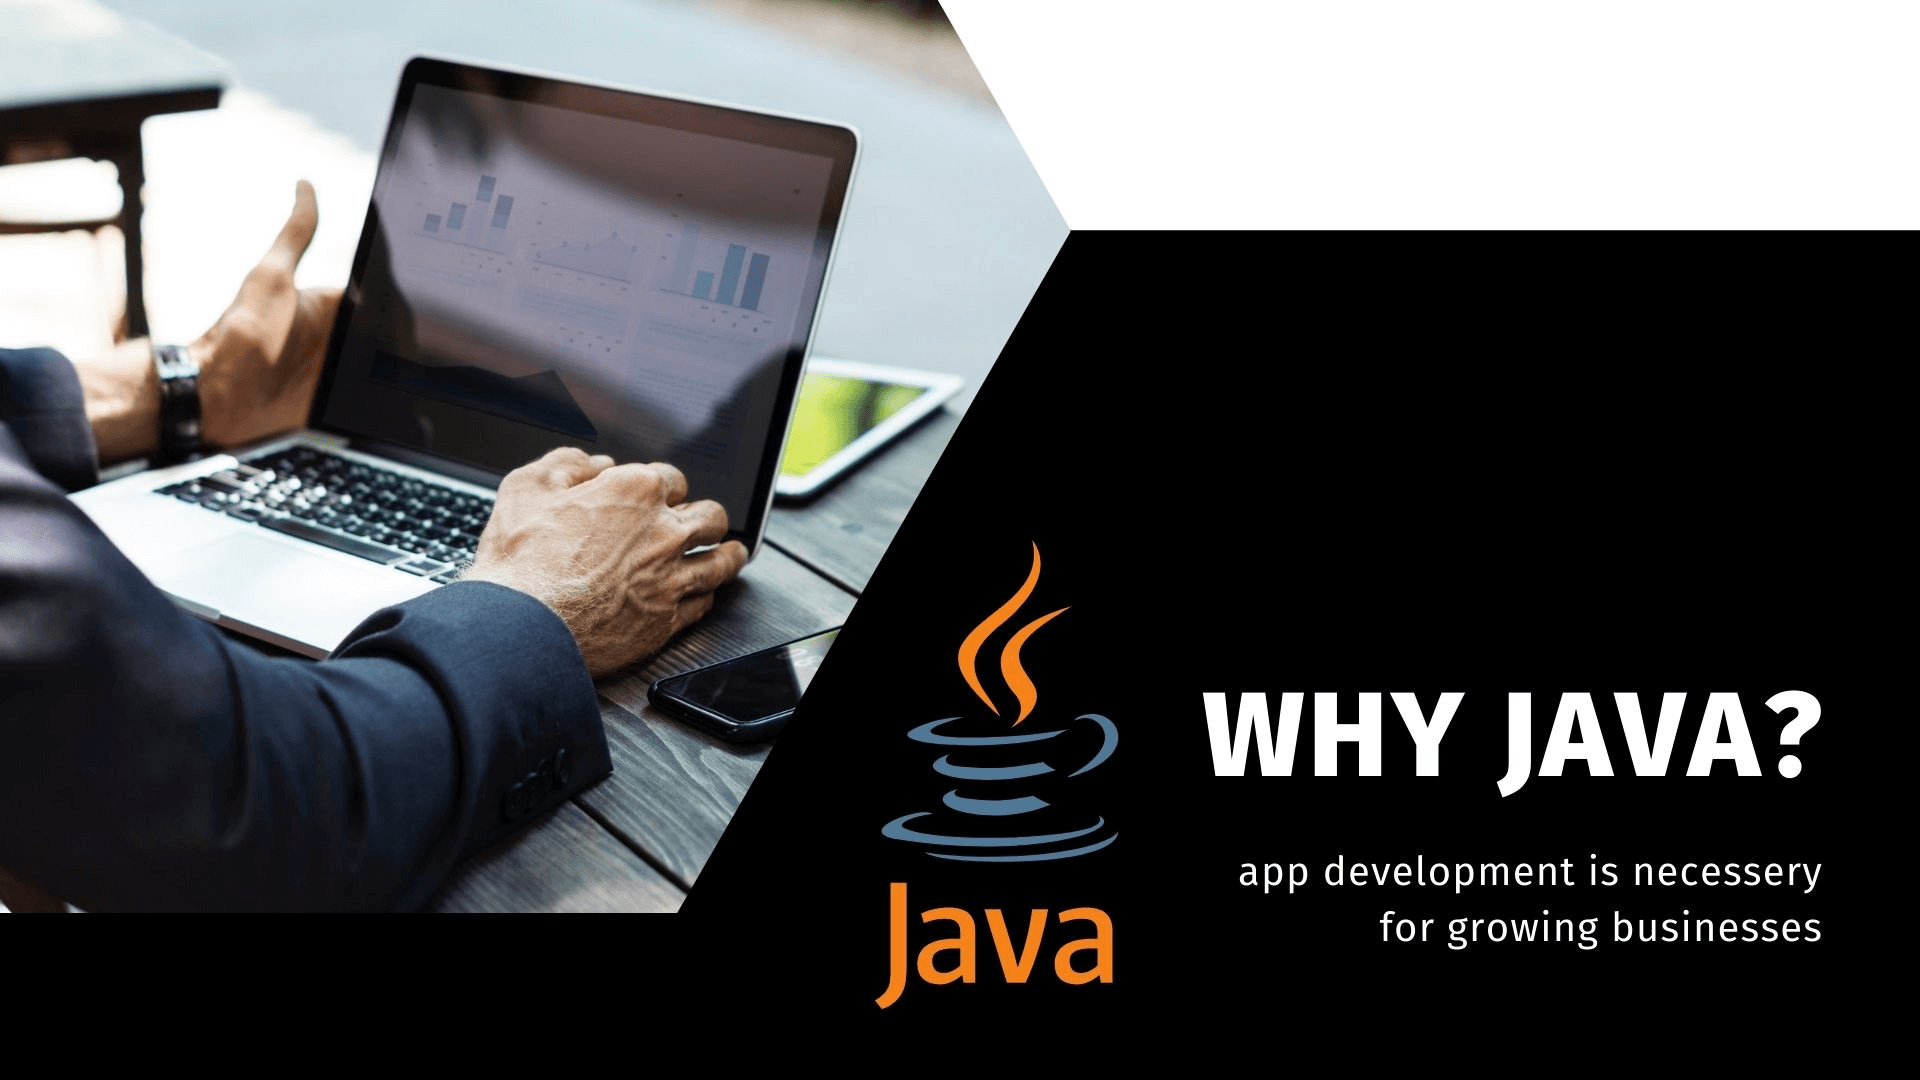 Why Java Application Development is Necessary for Growing Businesses?